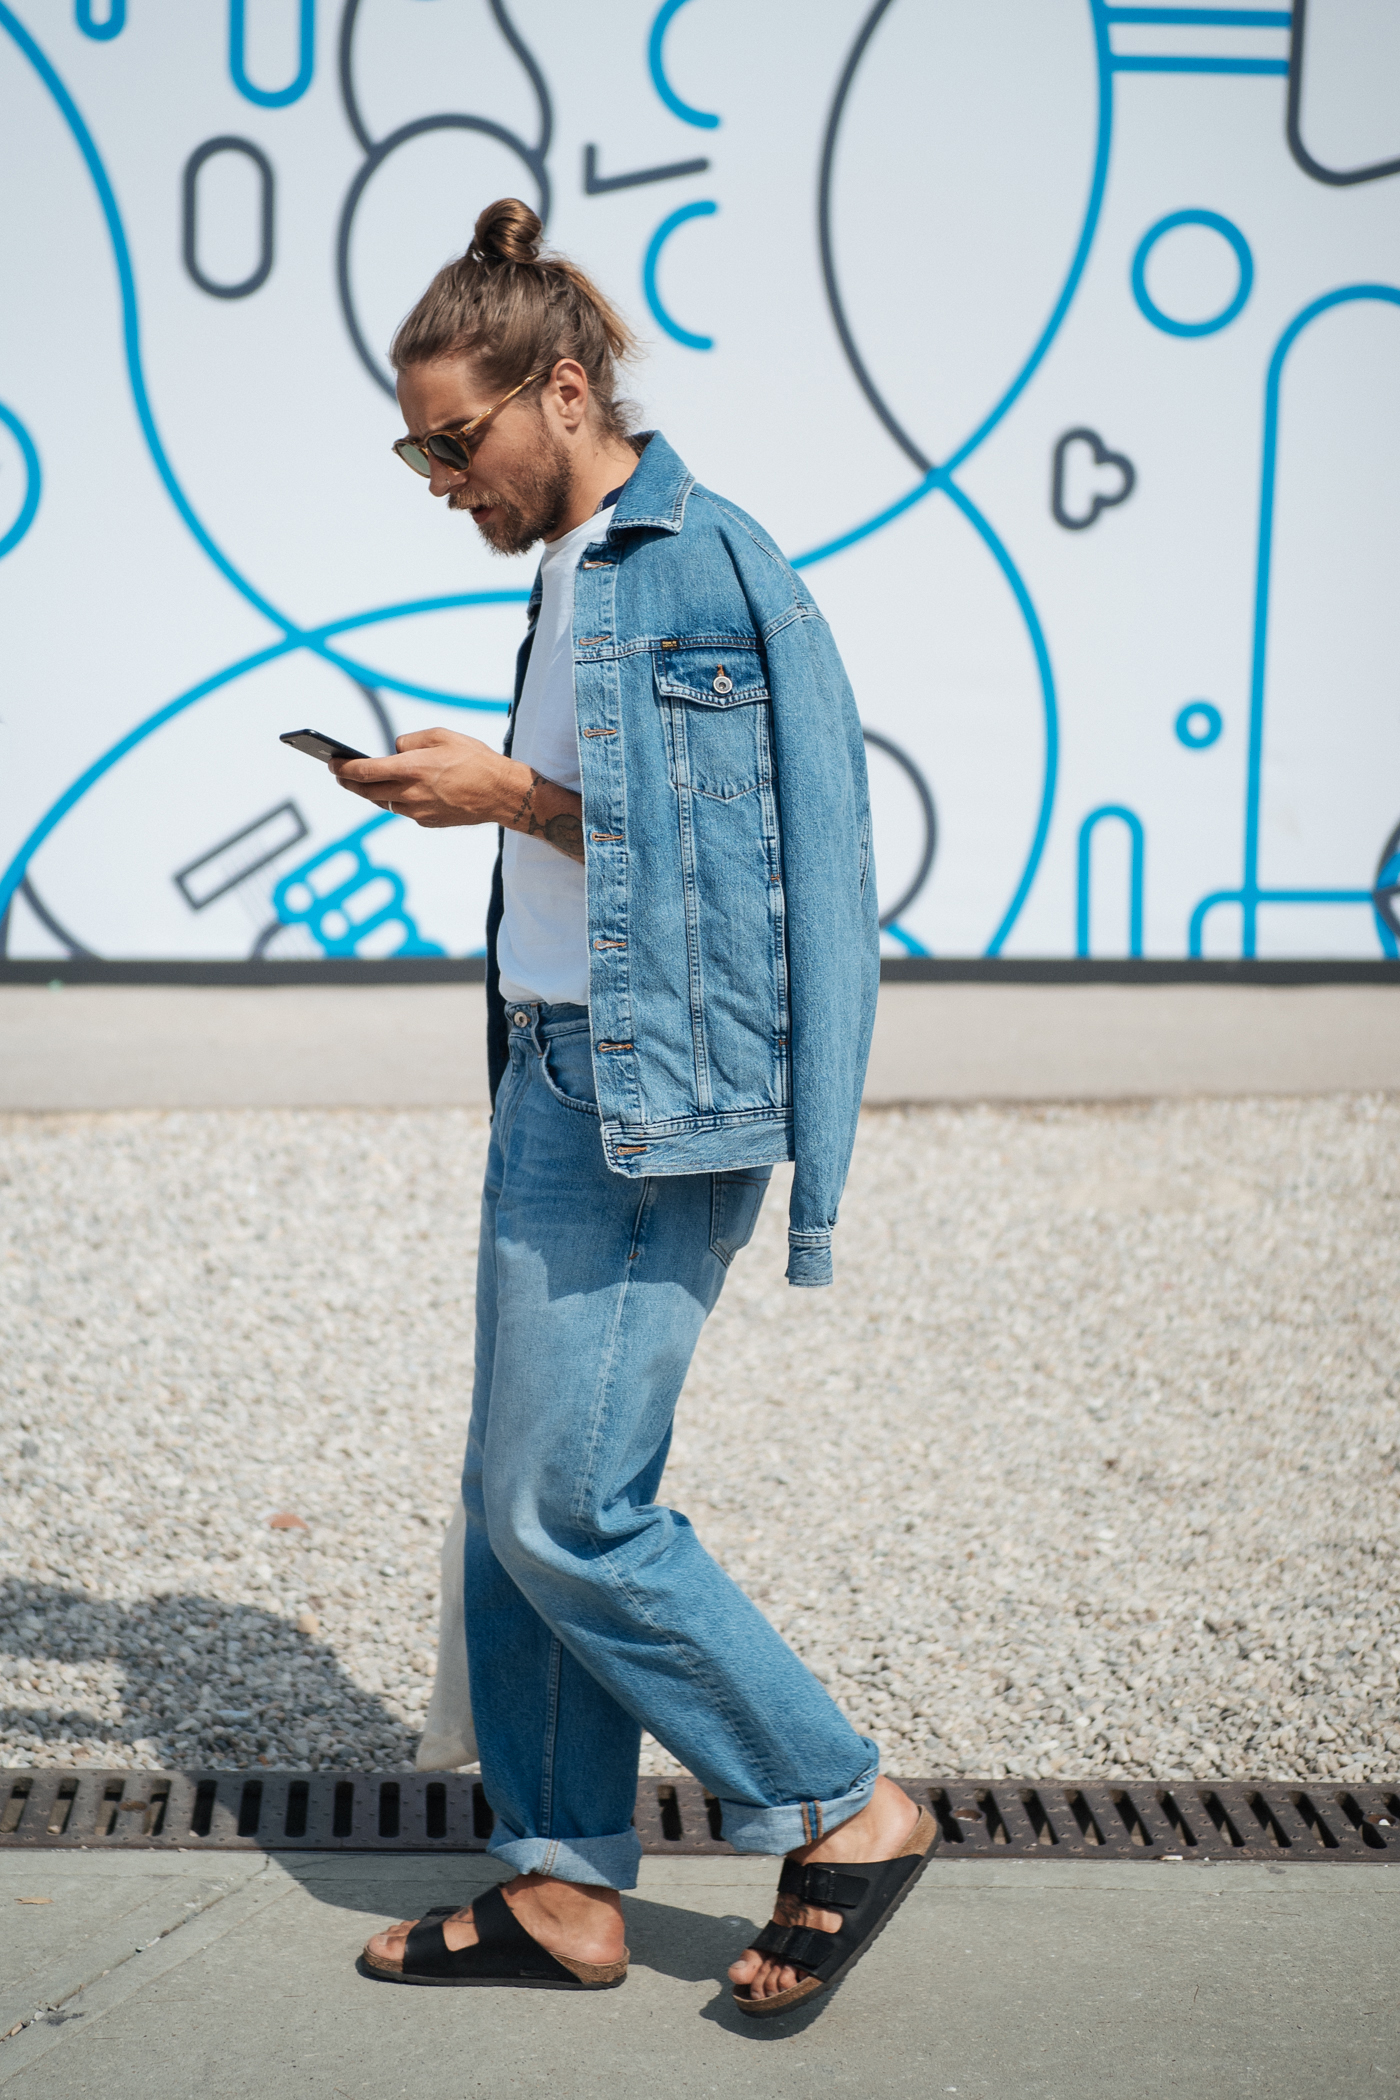 Canadian tux at Pitti Uomo, captured on my  OM-D E-M1 Mark II.